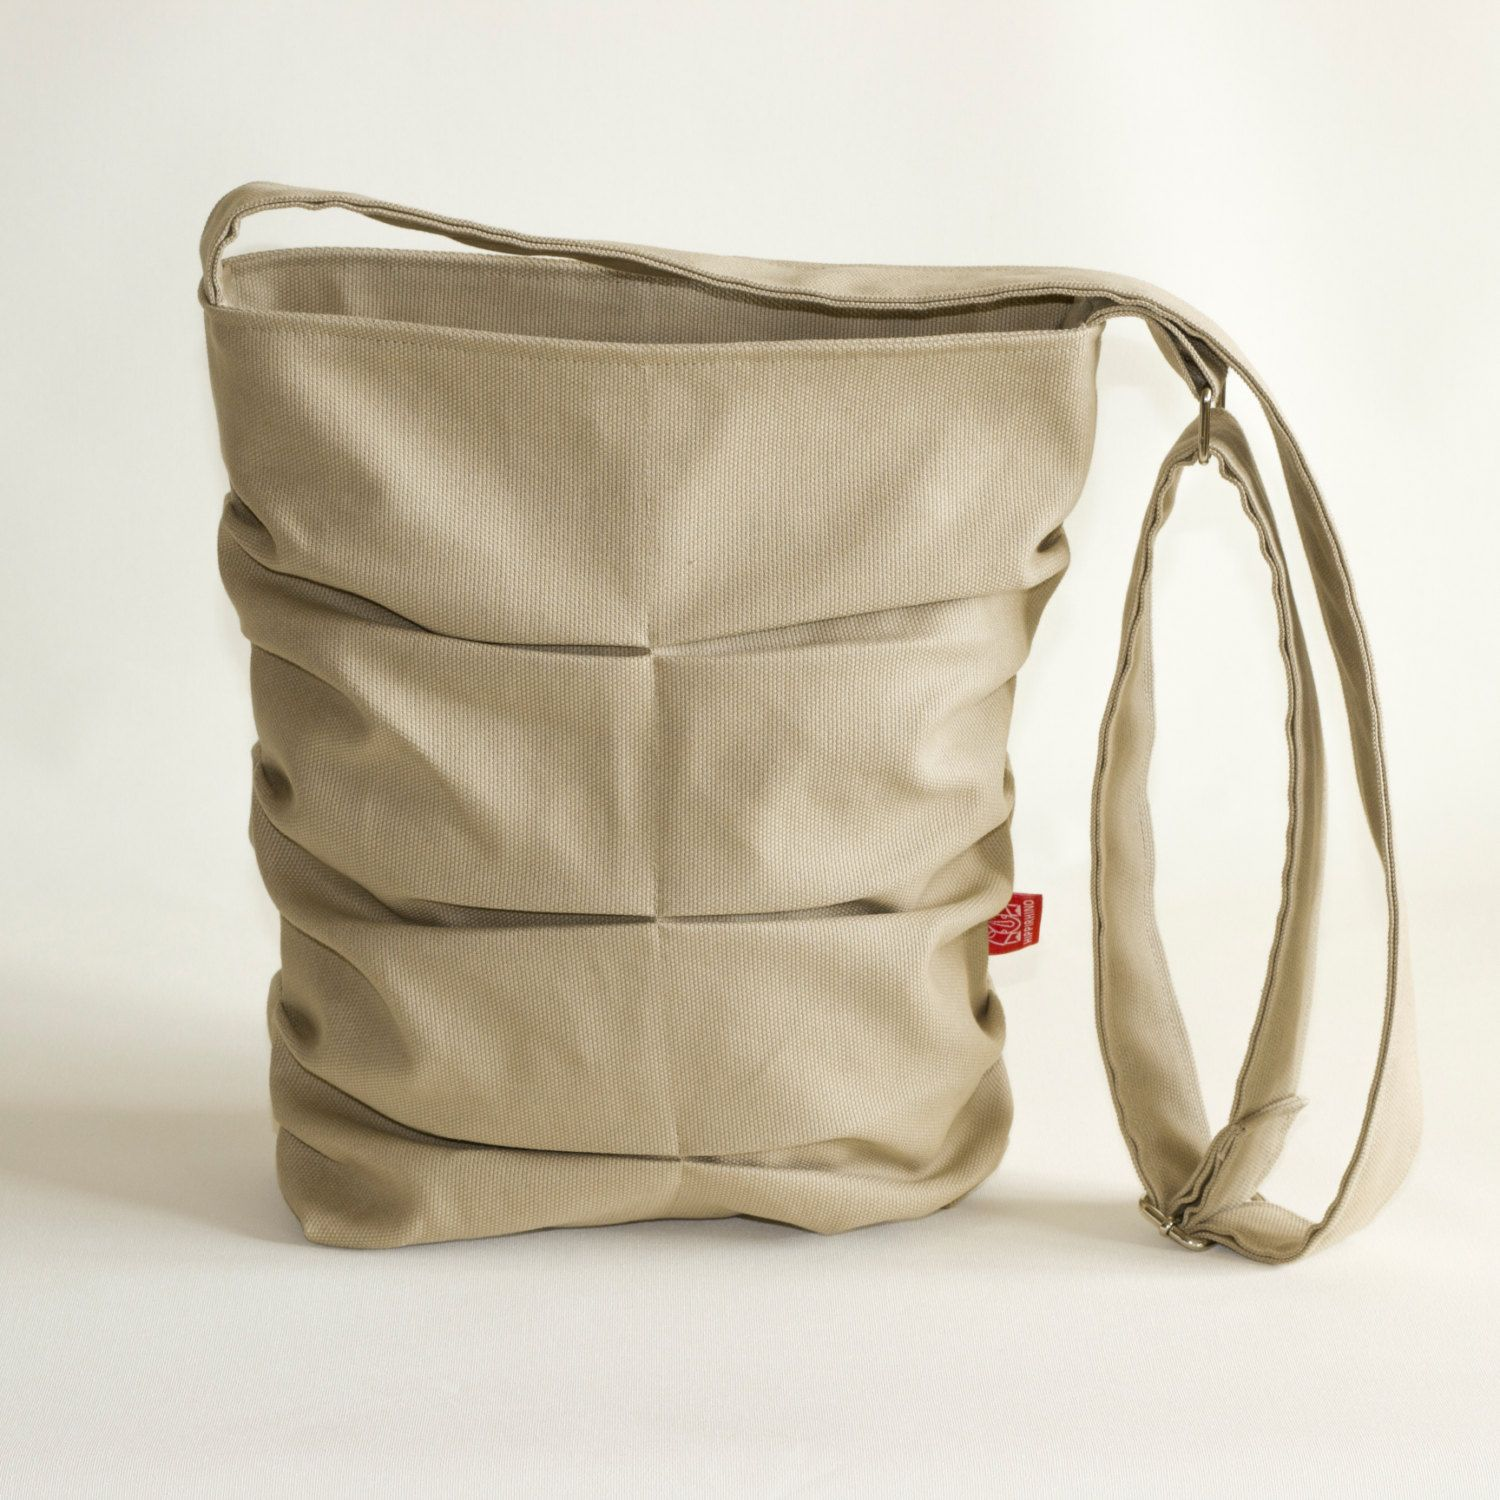 Light Brown Handmade Small Bag Pleated Long Strap Crossbody Shoulder Tote Purse Diaper Gift